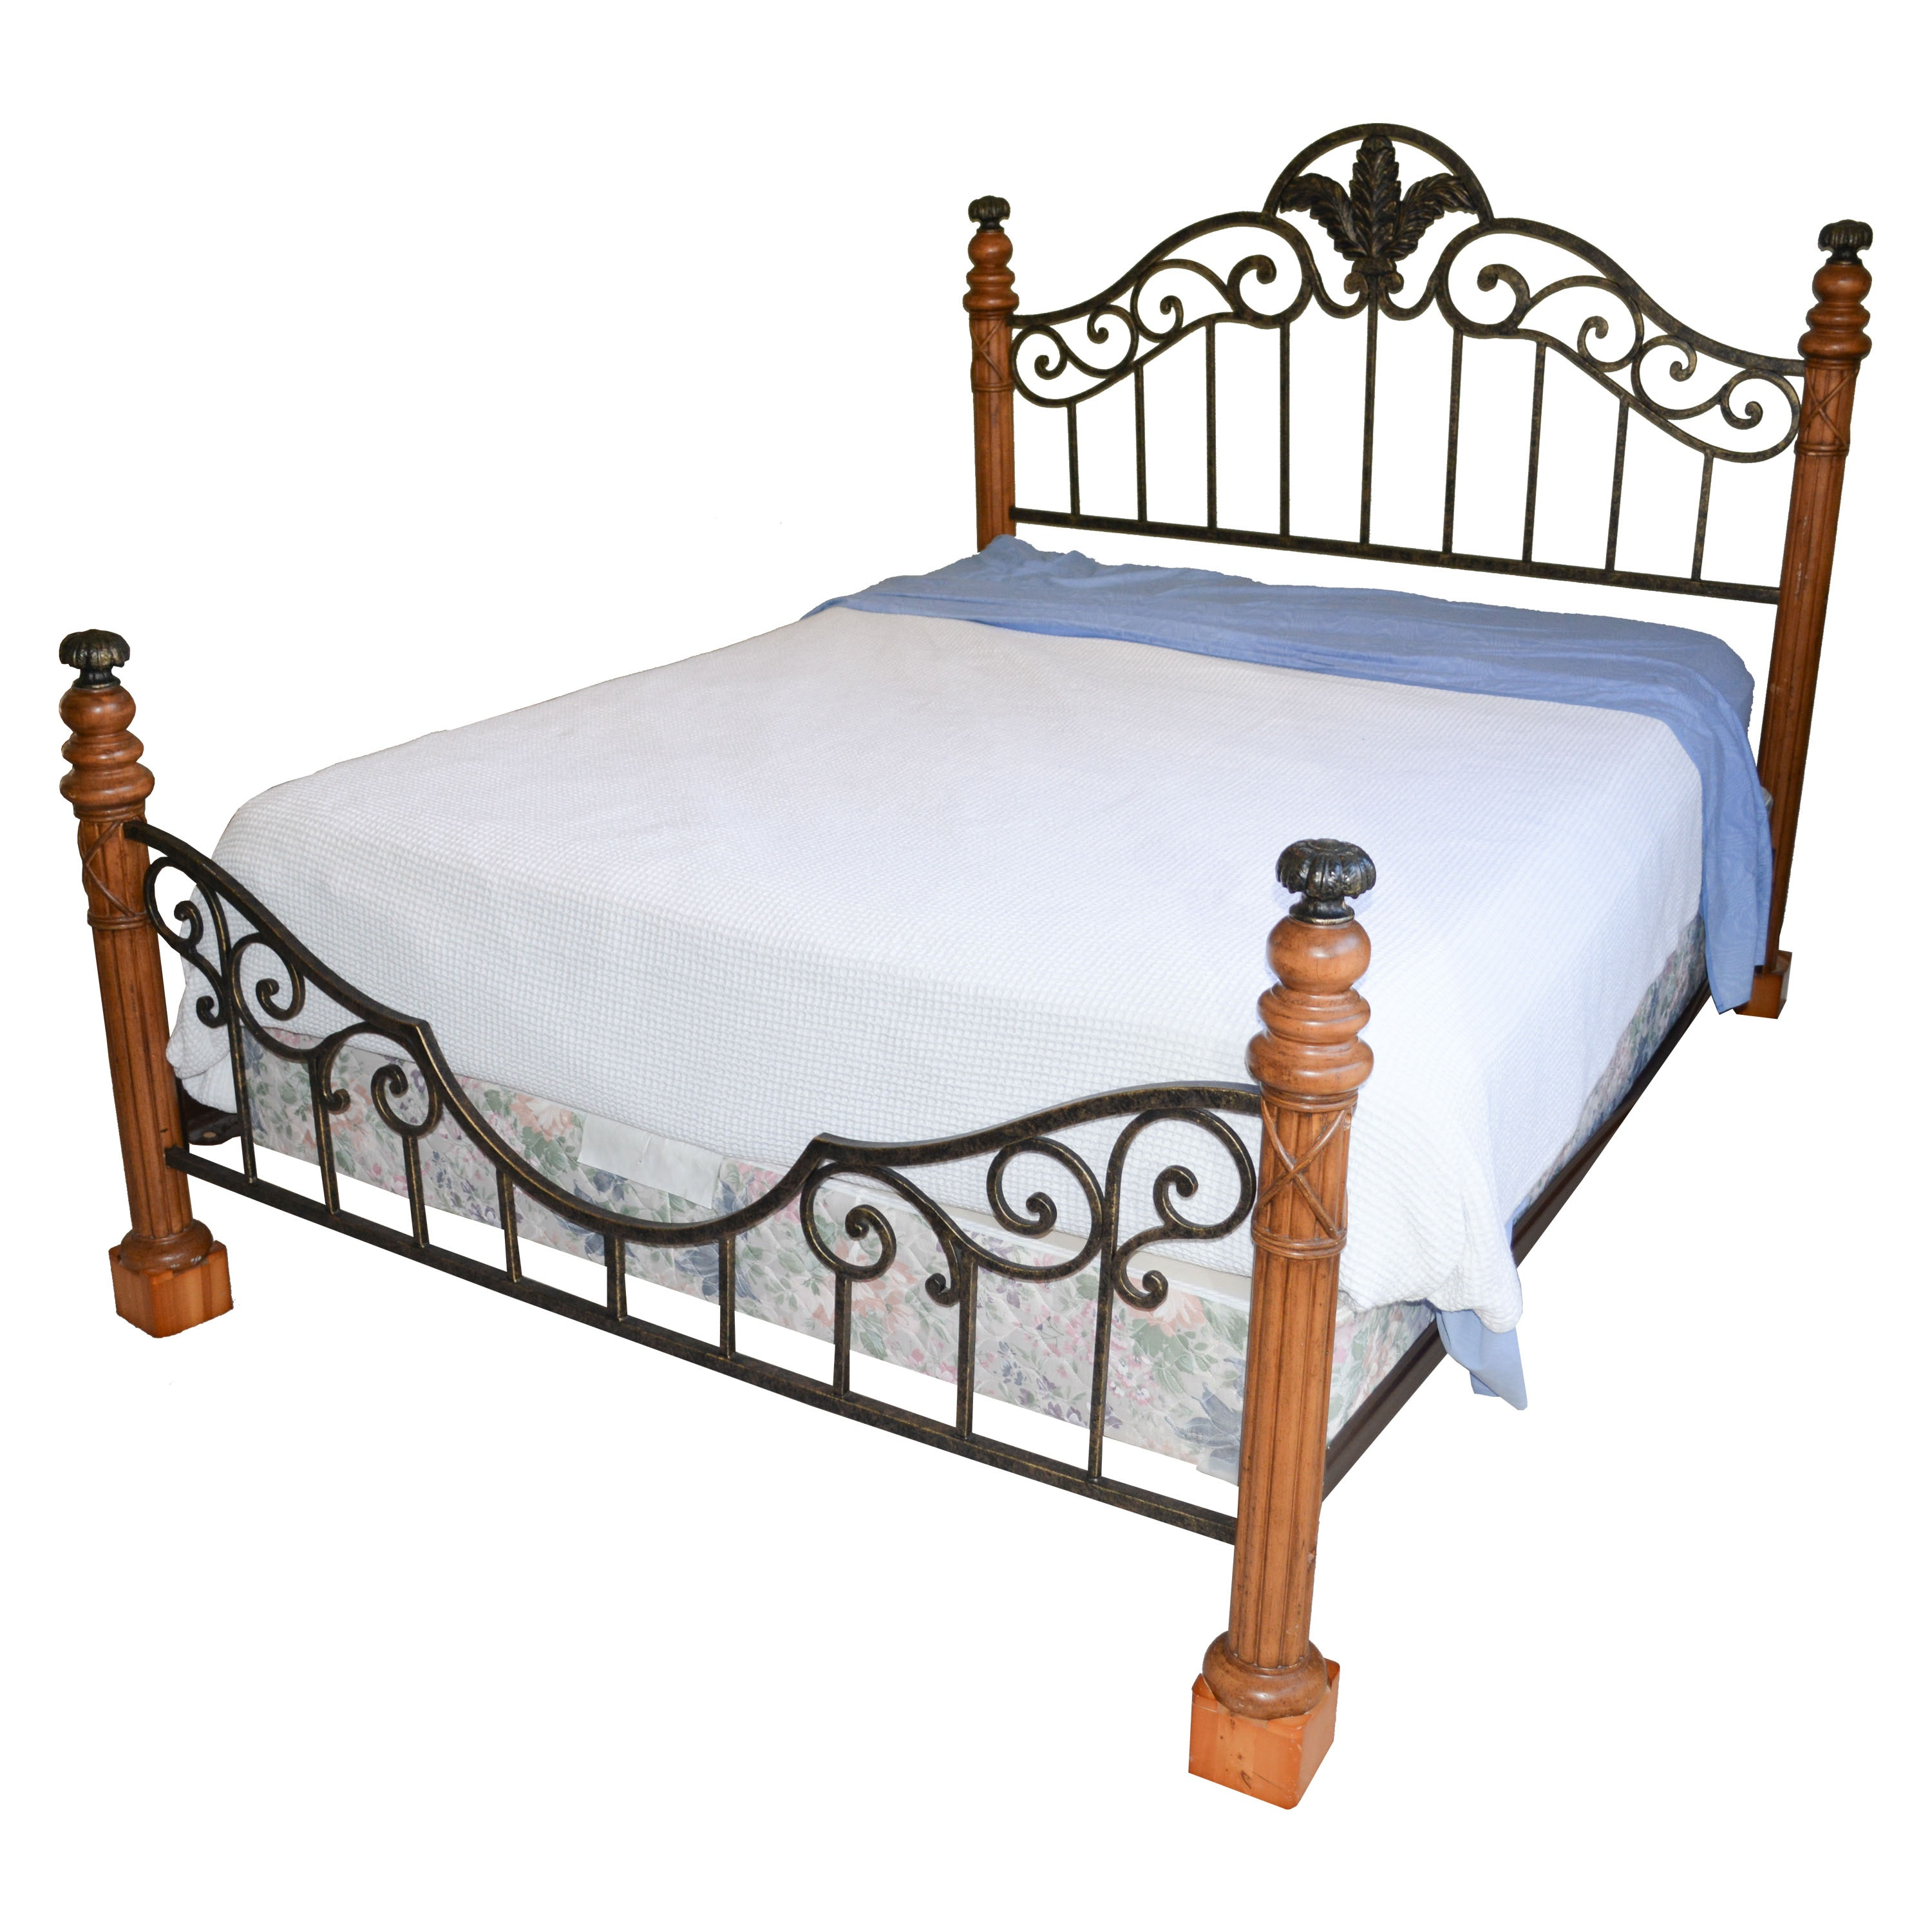 Contemporary Maple and Wrought Iron Queen-Size Bed Frame